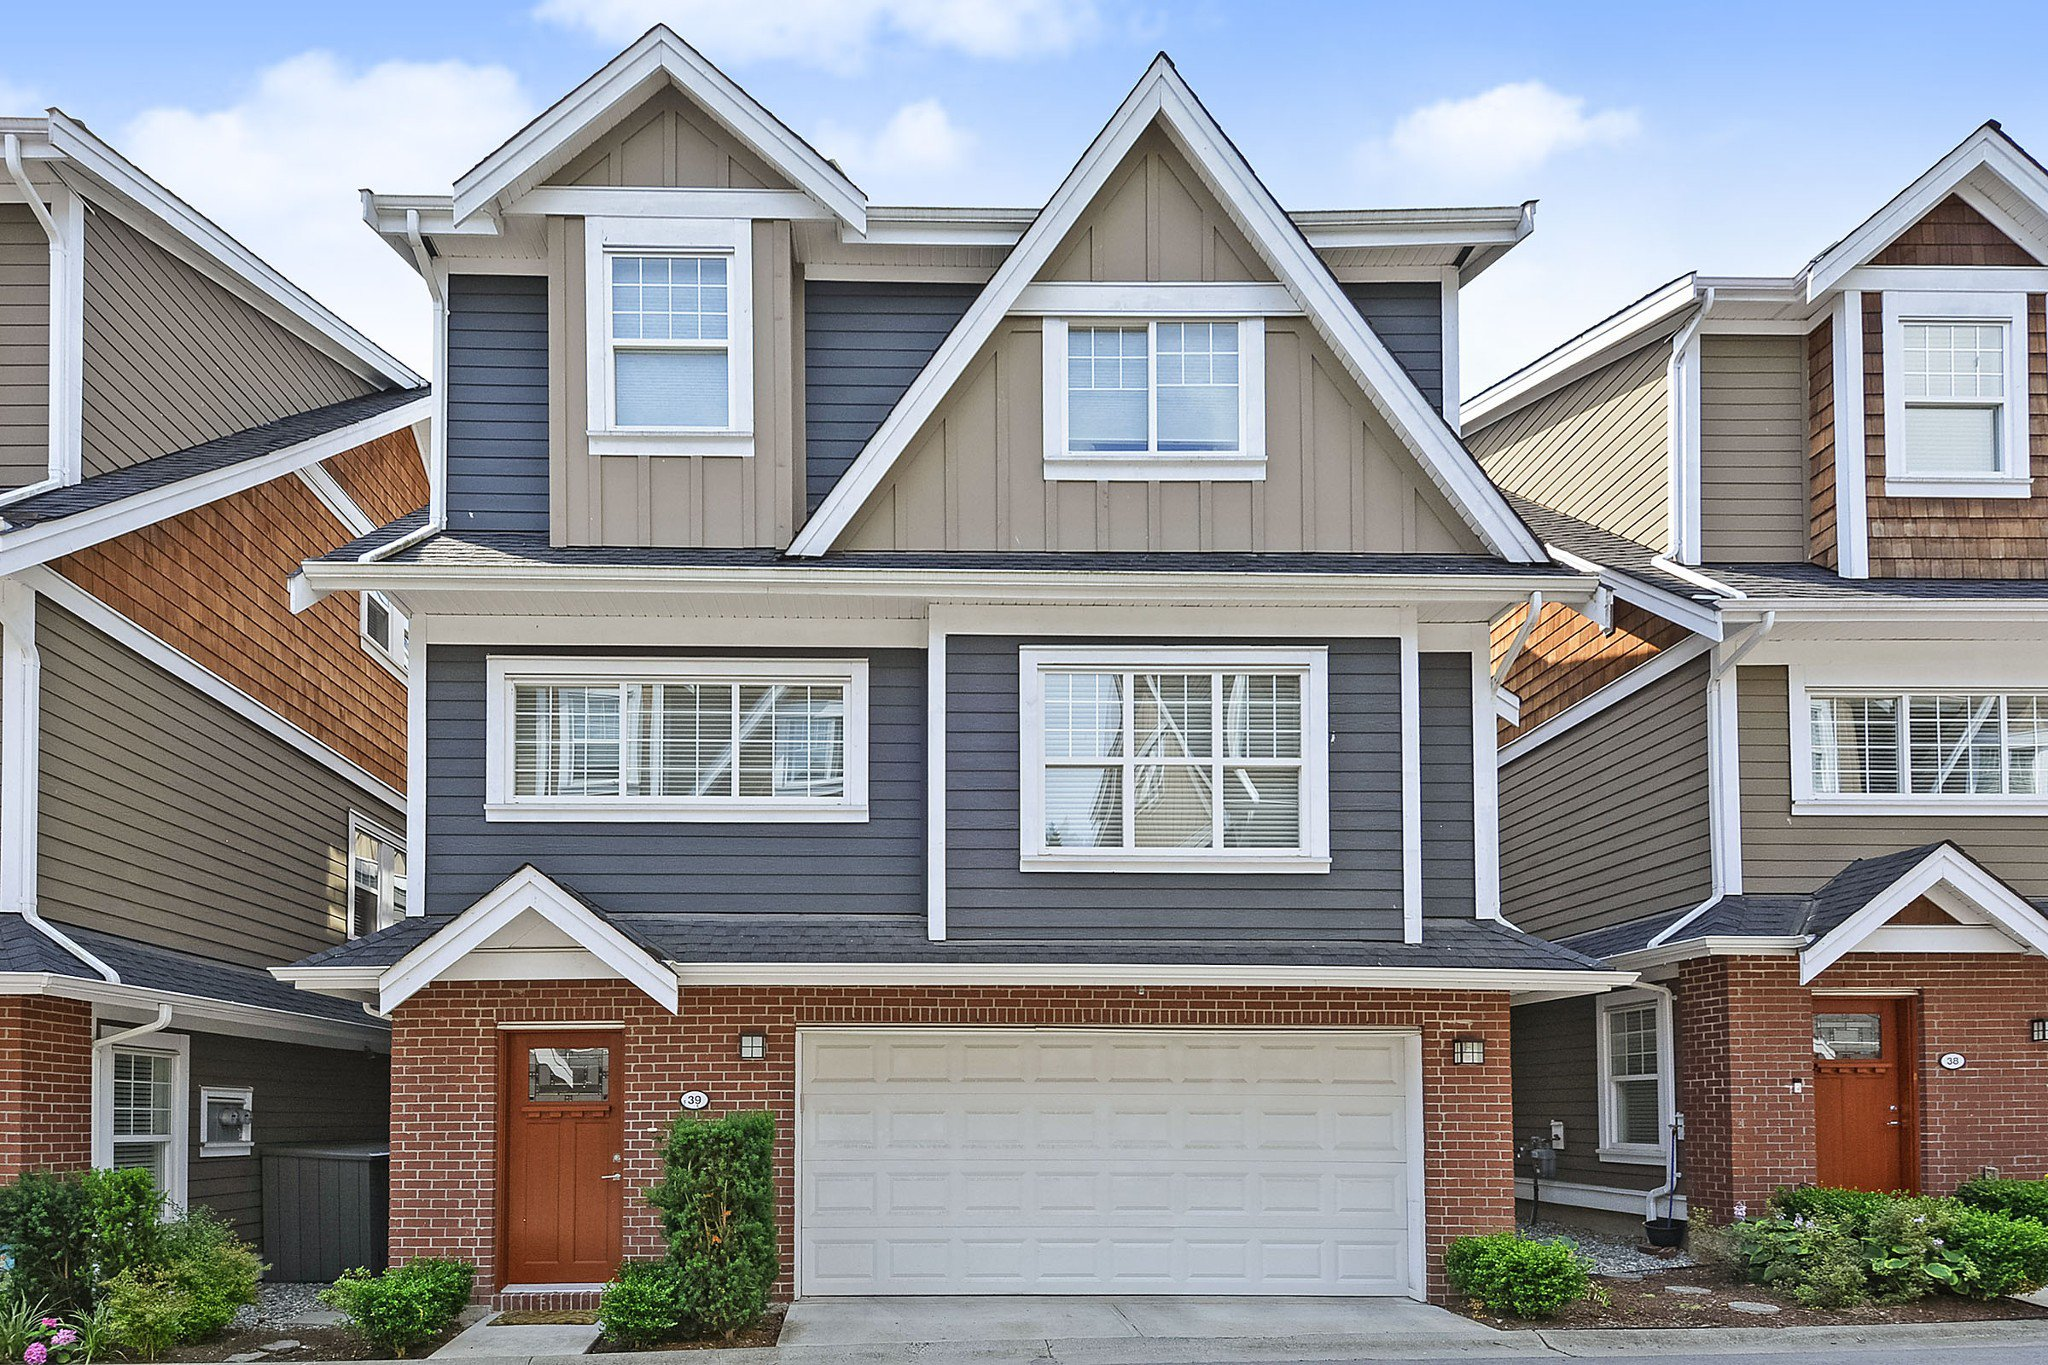 """Main Photo: 39 15988 32 Avenue in Surrey: Grandview Surrey Townhouse for sale in """"BLU"""" (South Surrey White Rock)  : MLS®# R2388879"""